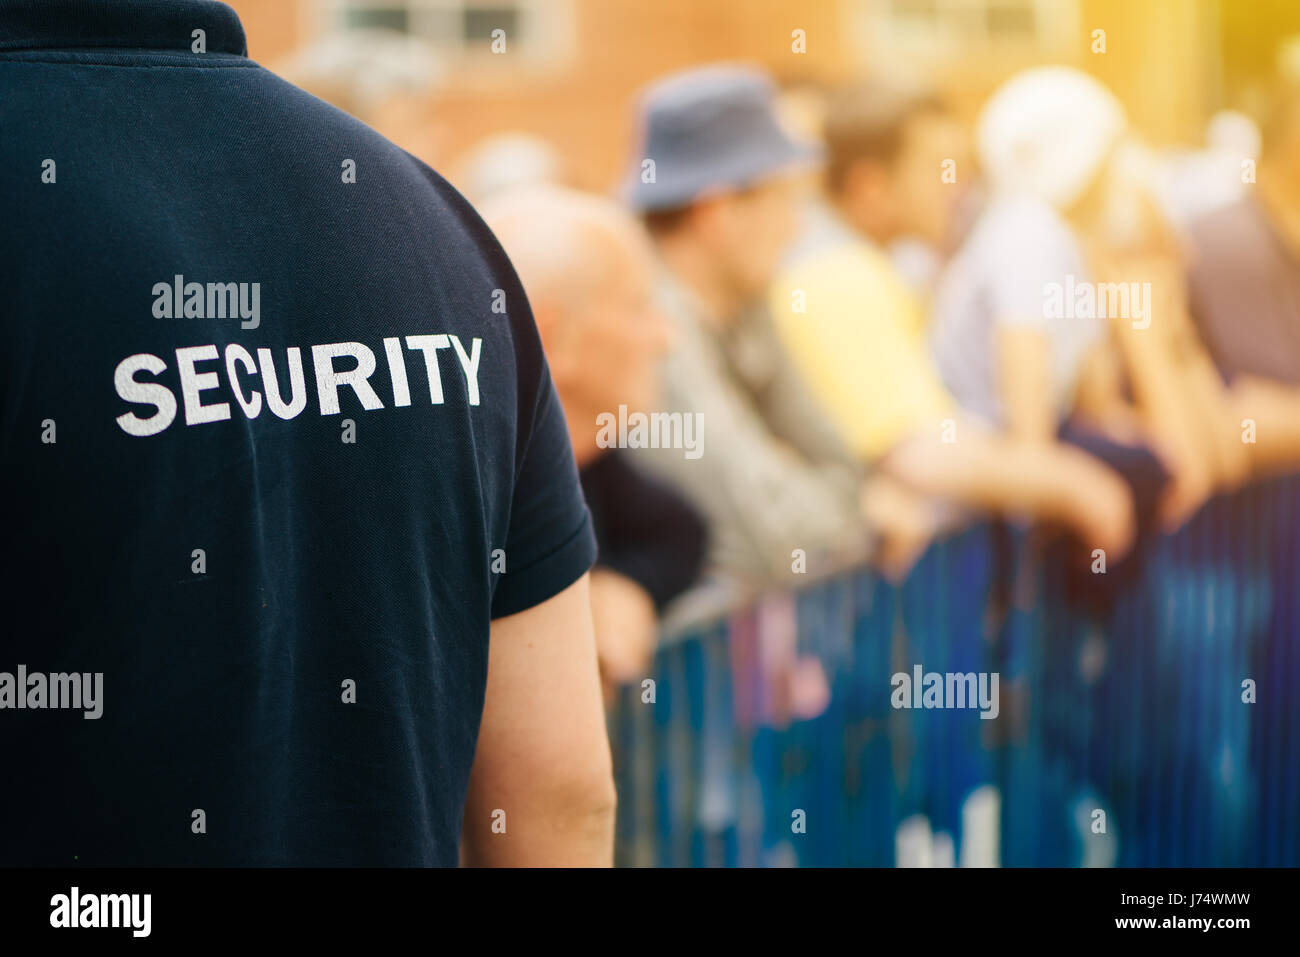 Member of security guard team working on public event, unrecognizable male person from behind - Stock Image